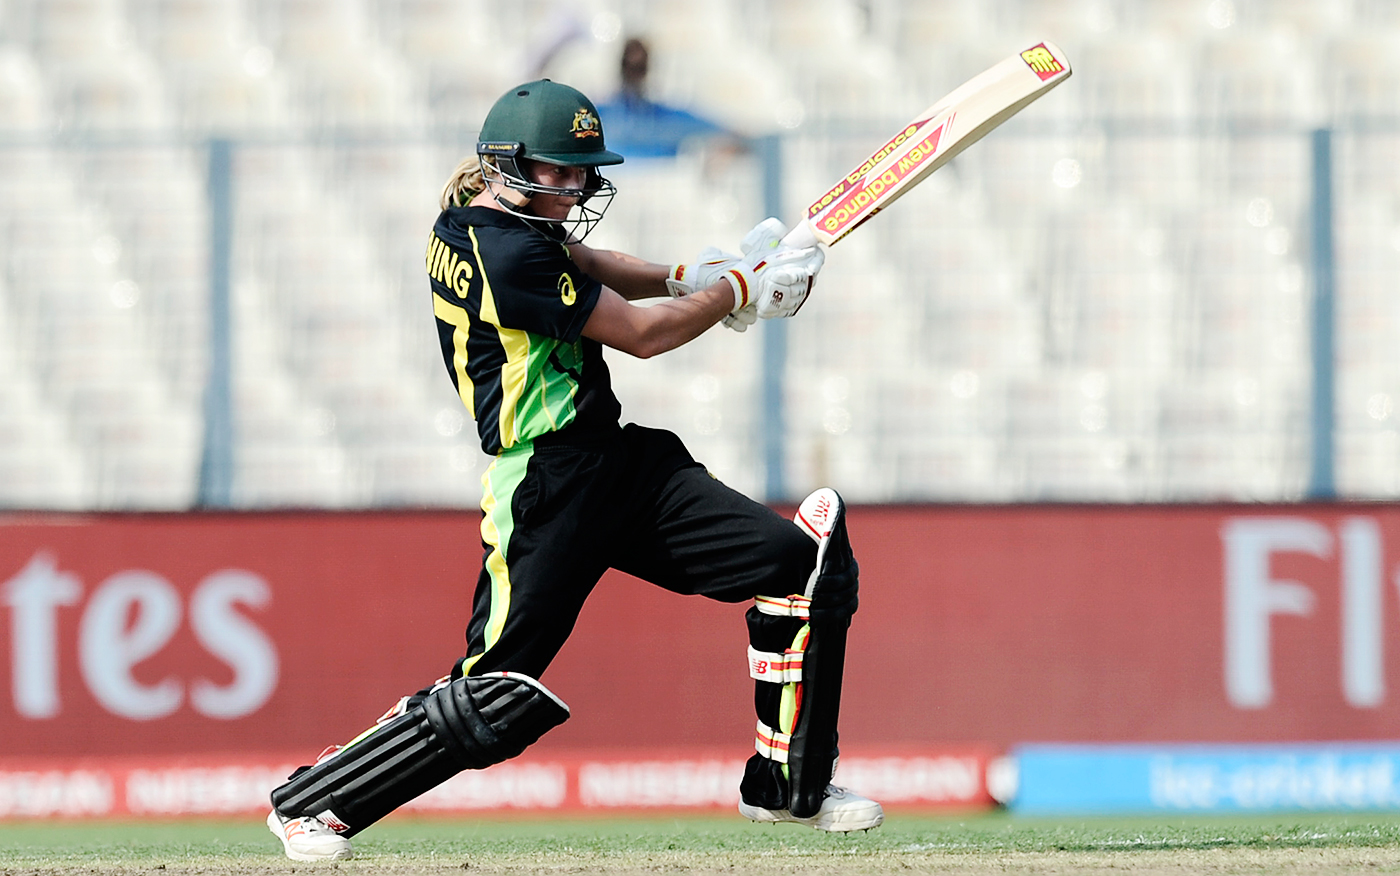 Numbers game: Lanning holds the record for the most ODI hundreds and is likely to become the highest run getter in the format well before the end of her career